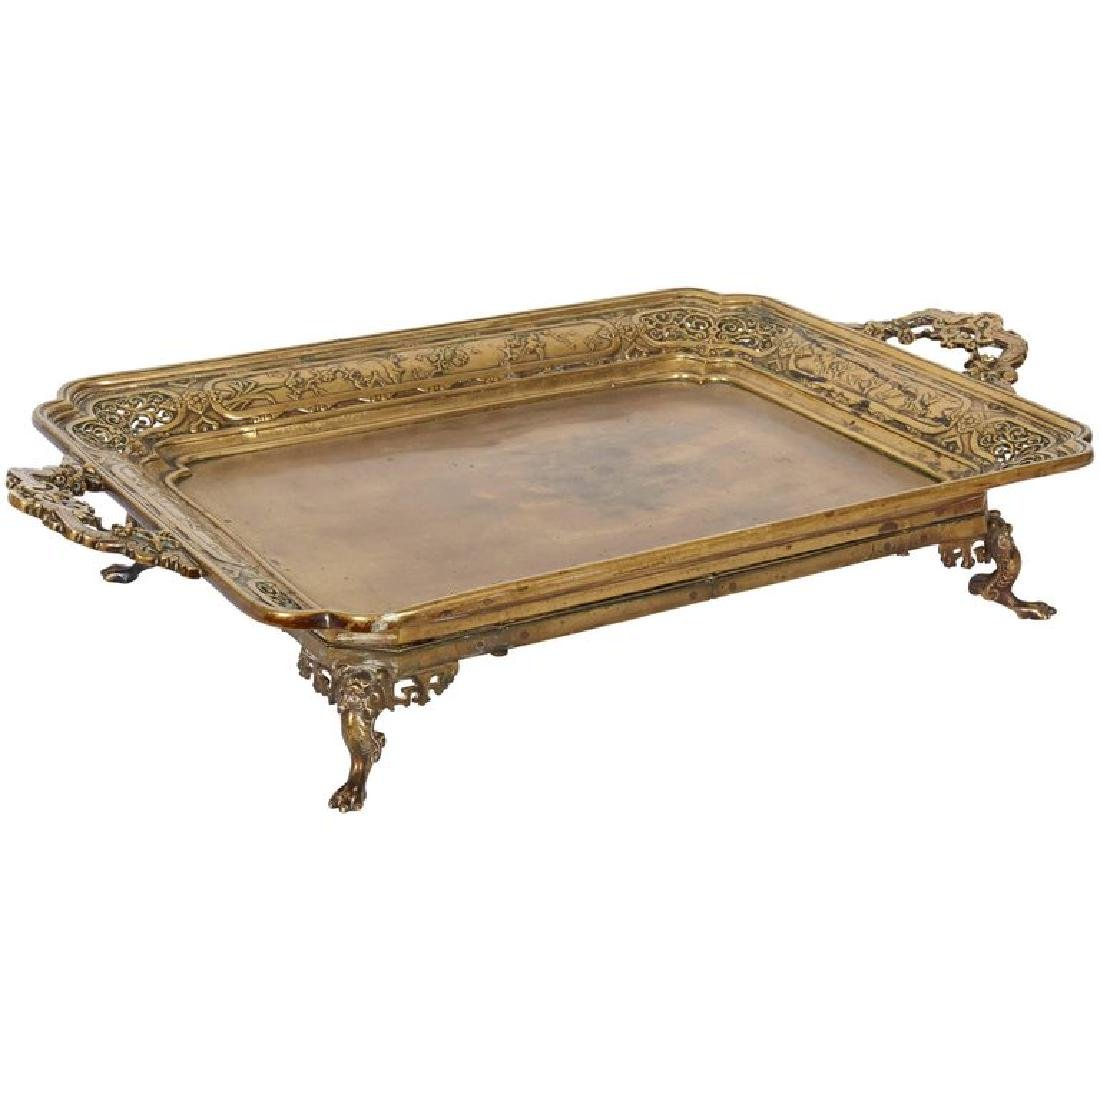 Large French Japonisme Bronze Two Handle Tray, 19th